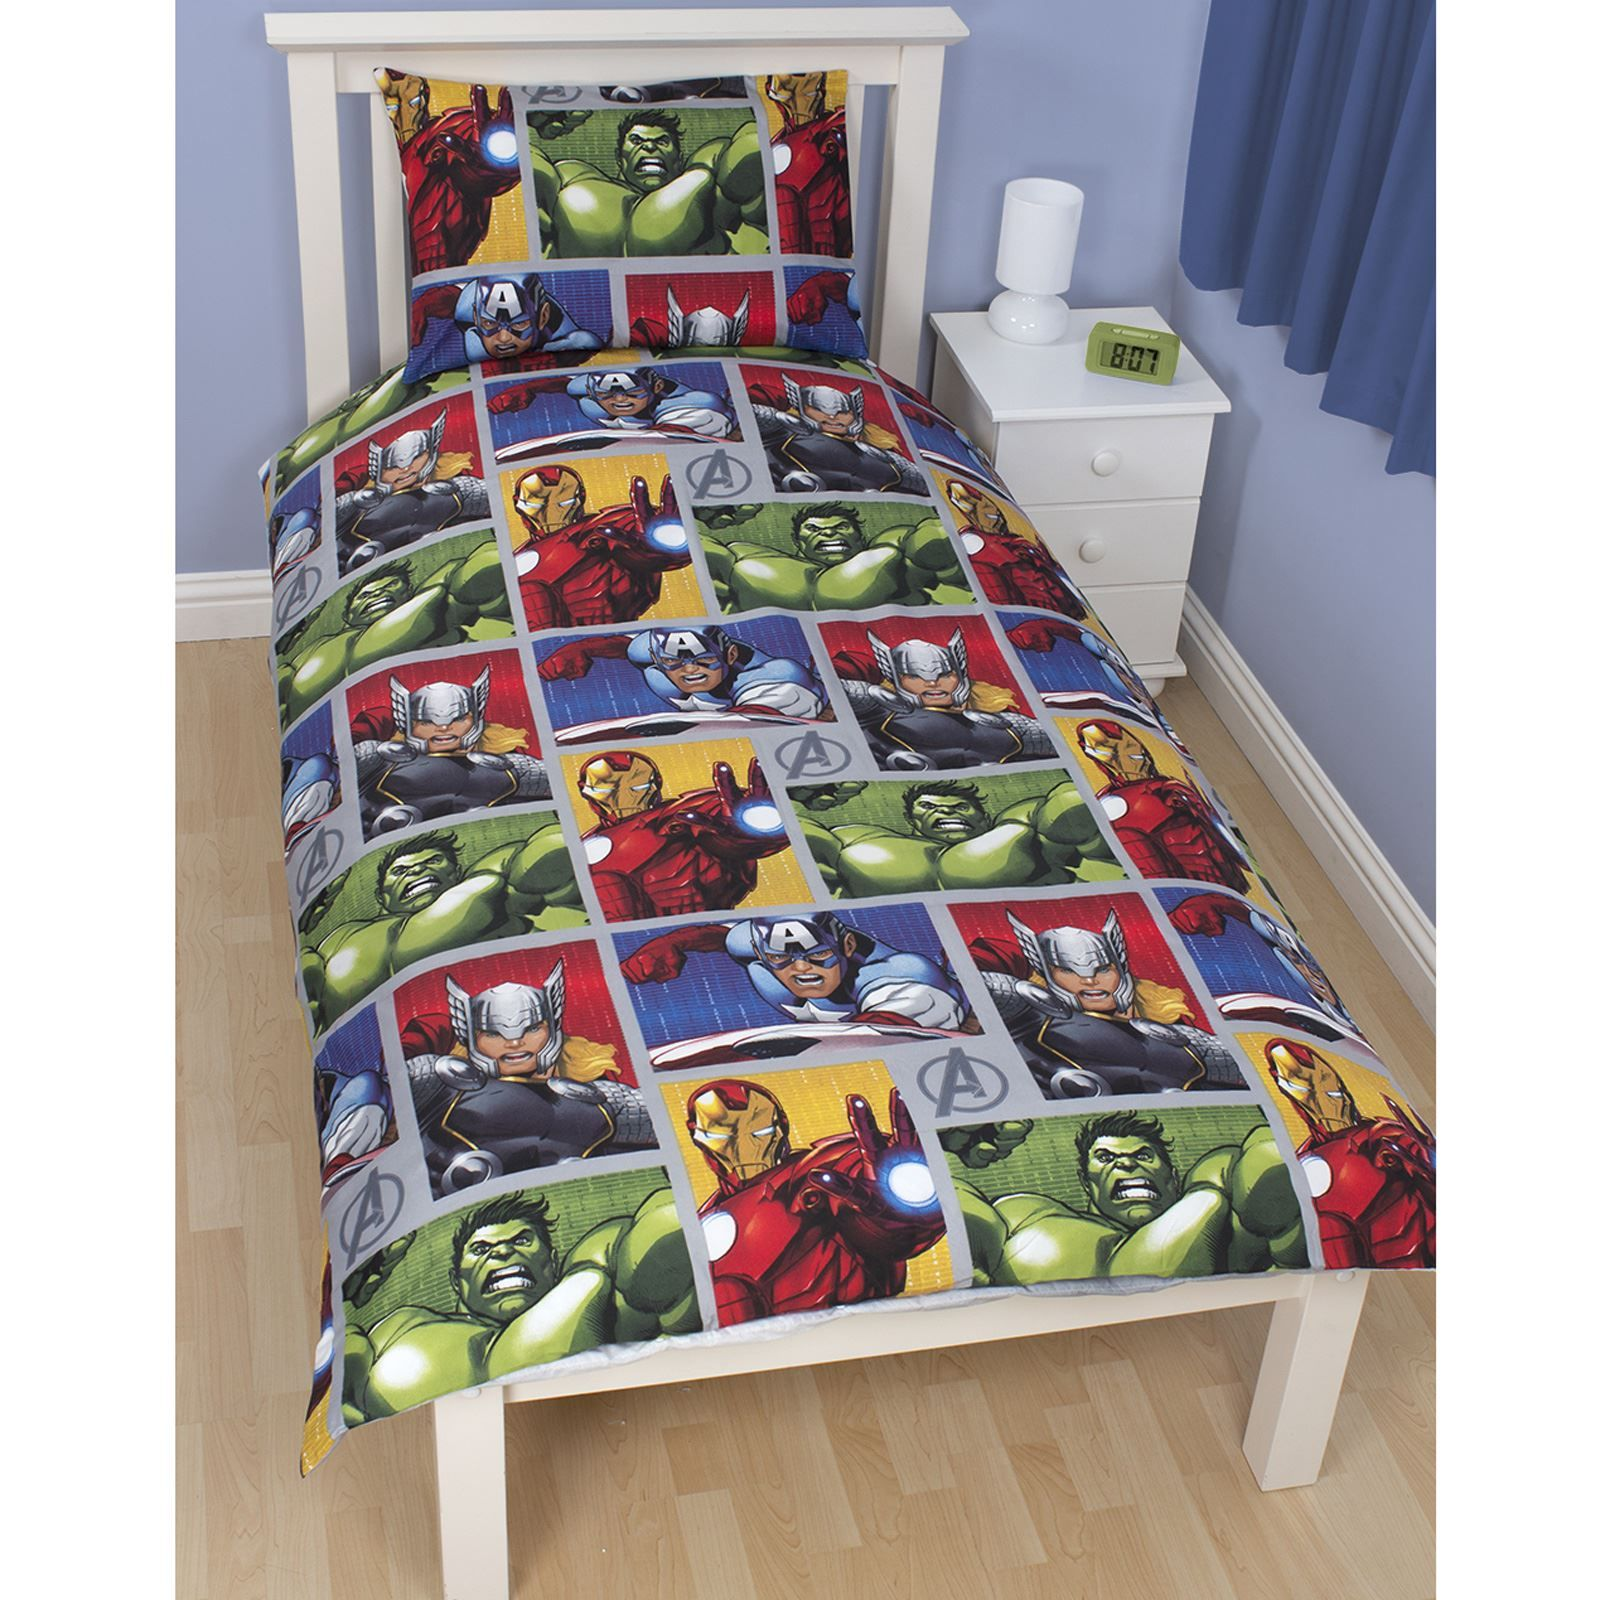 ... AVENGERS MARVEL COMICS BEDDING + BEDROOM ACCESSORIES DUVETS CURTAINS